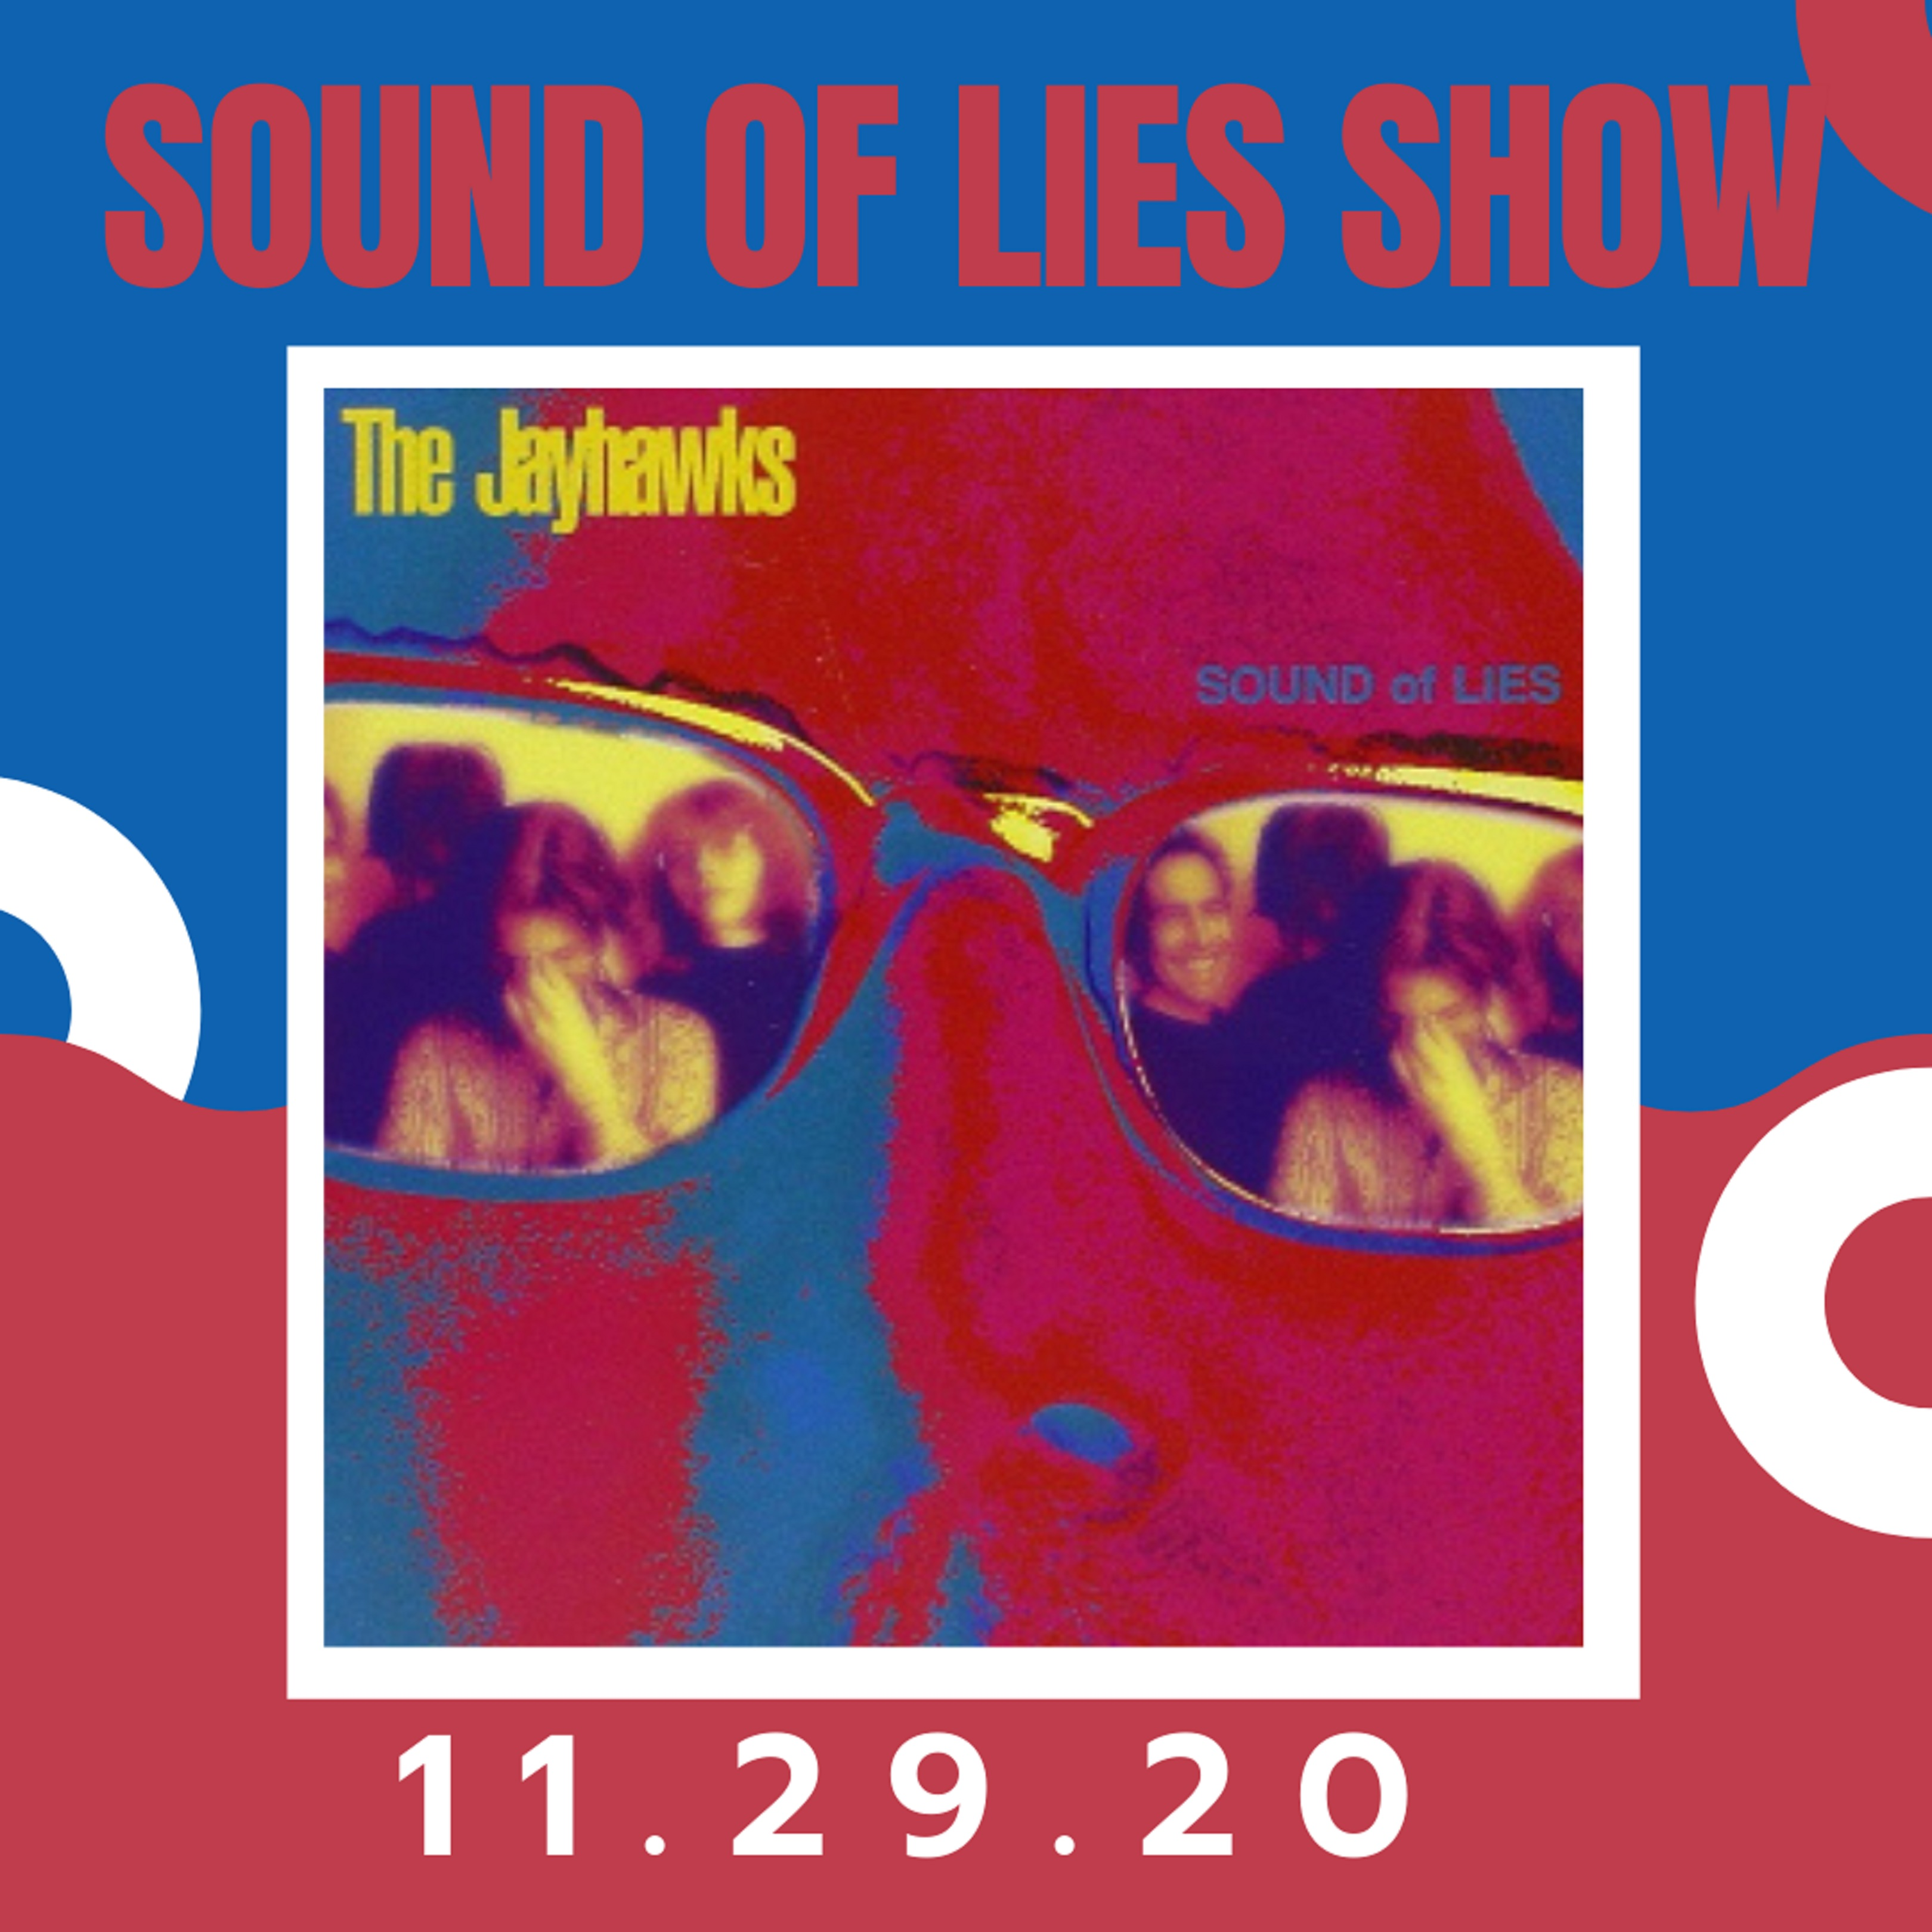 The Jayhawks To Perform Sound of Lies In Its Entirety On November 29